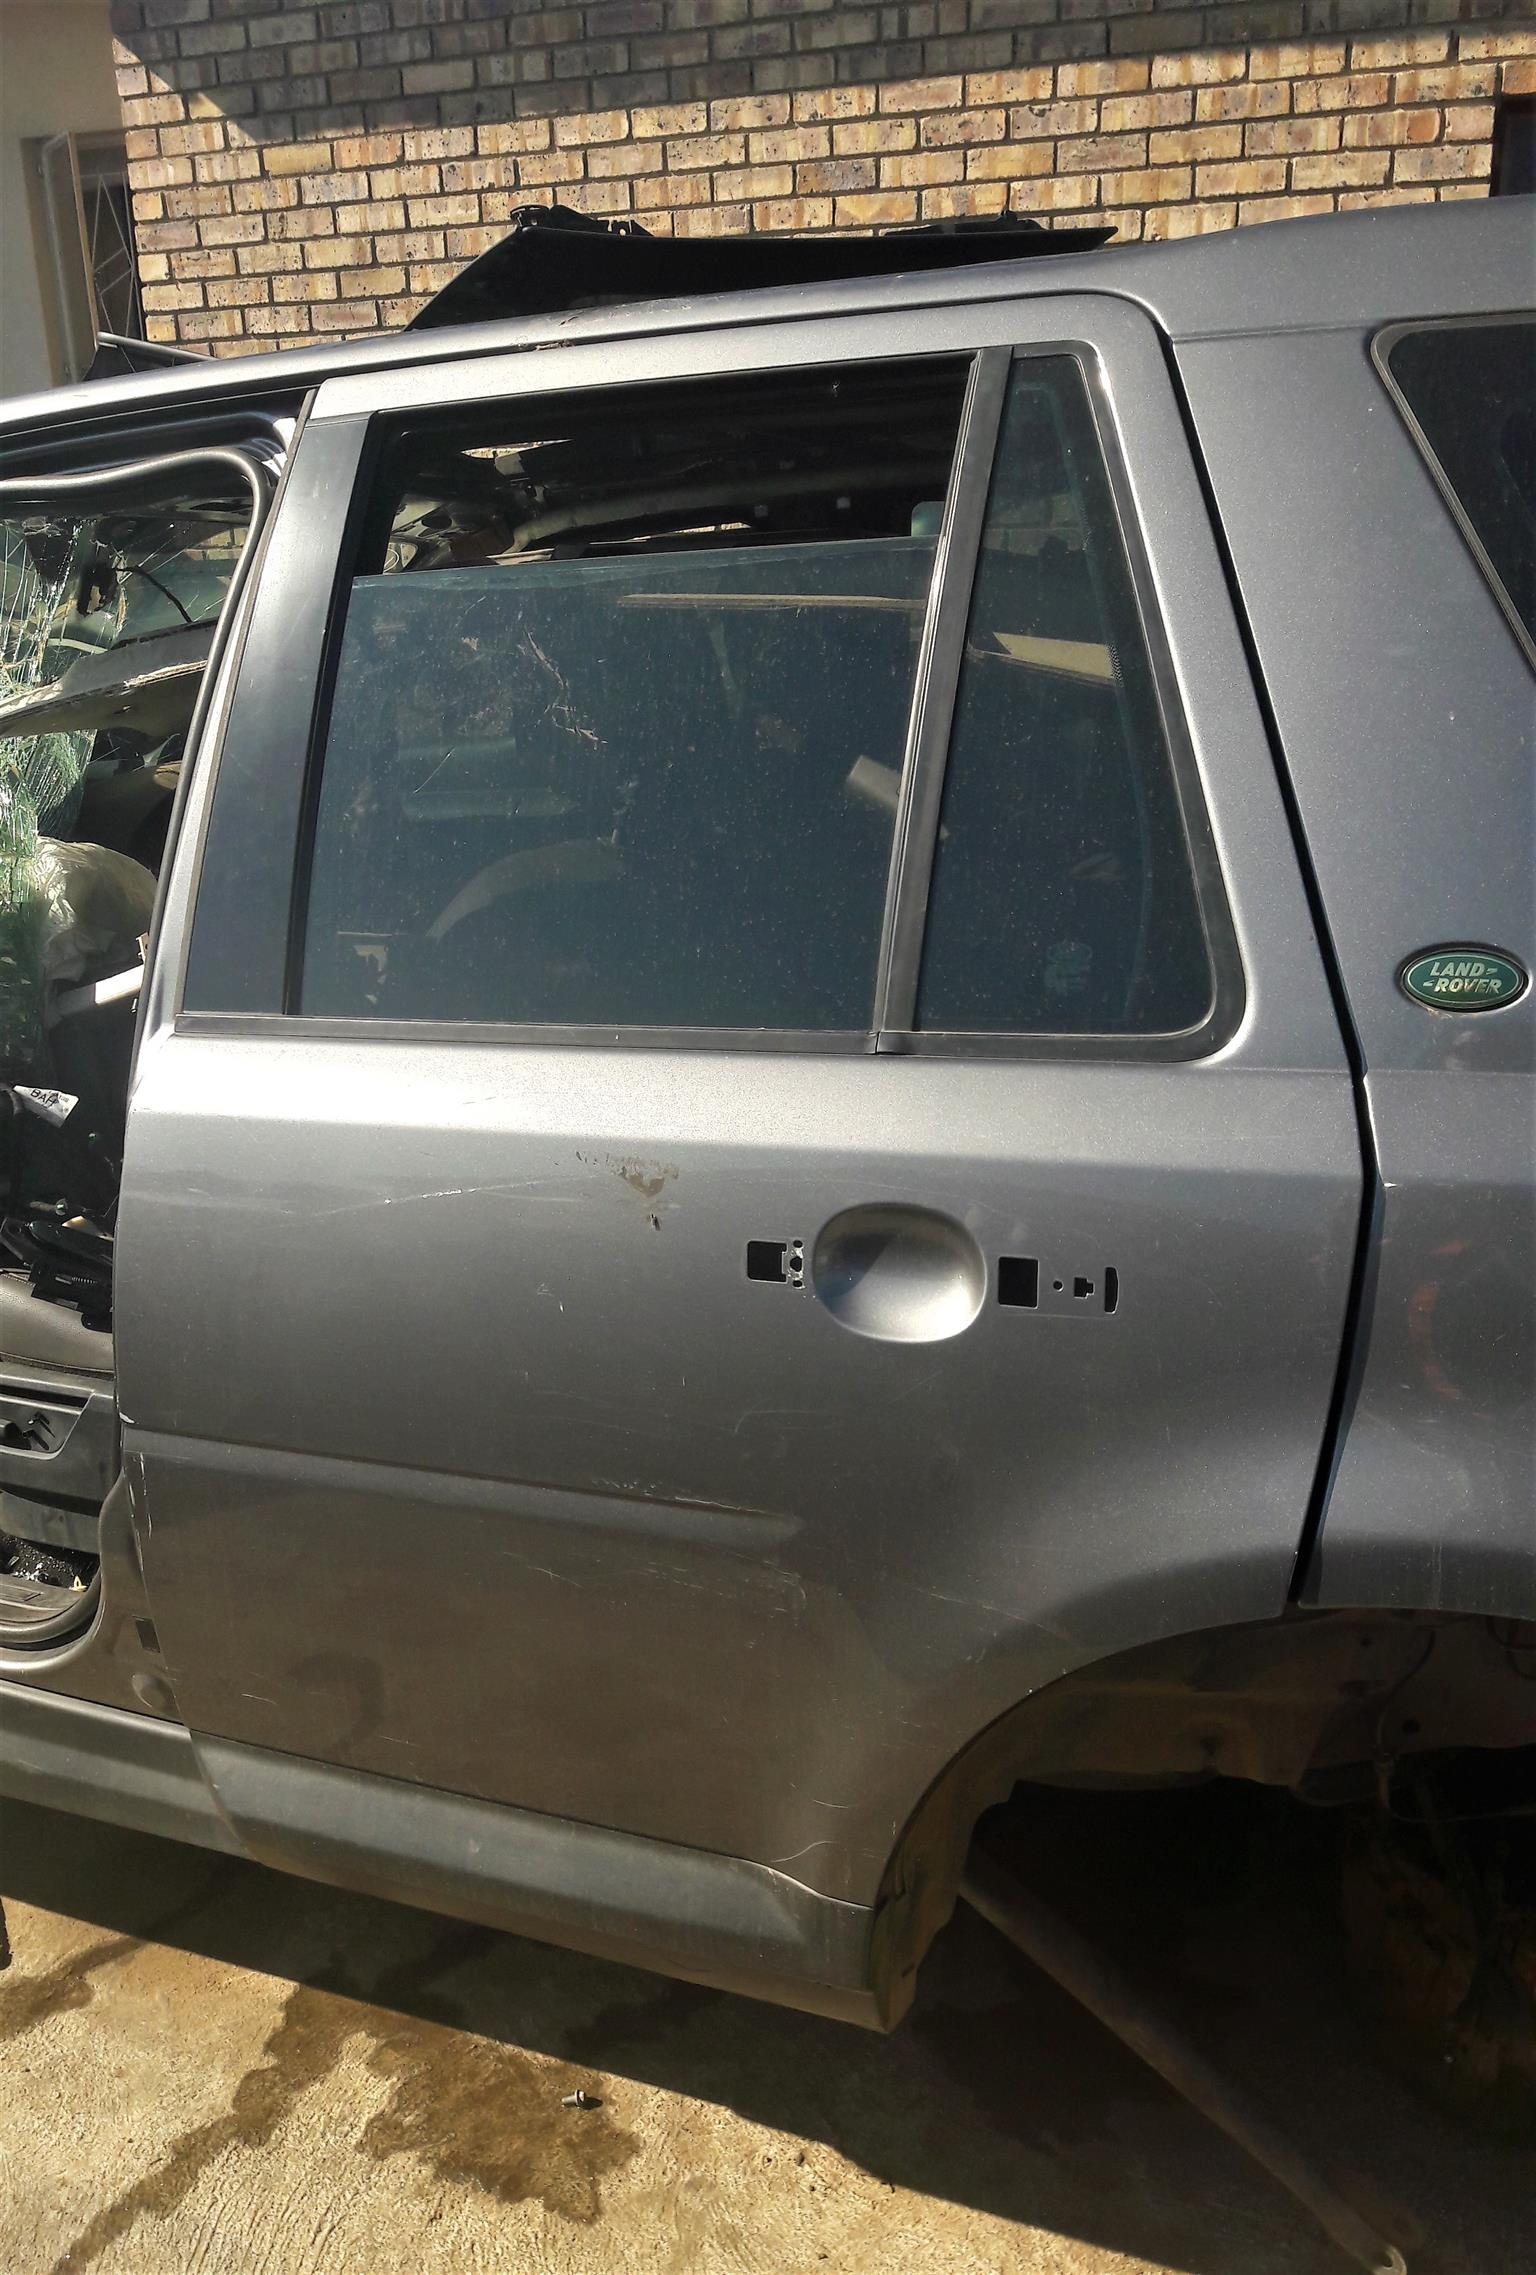 Land Rover Freelander 2 Rear Door | Auto Ezi